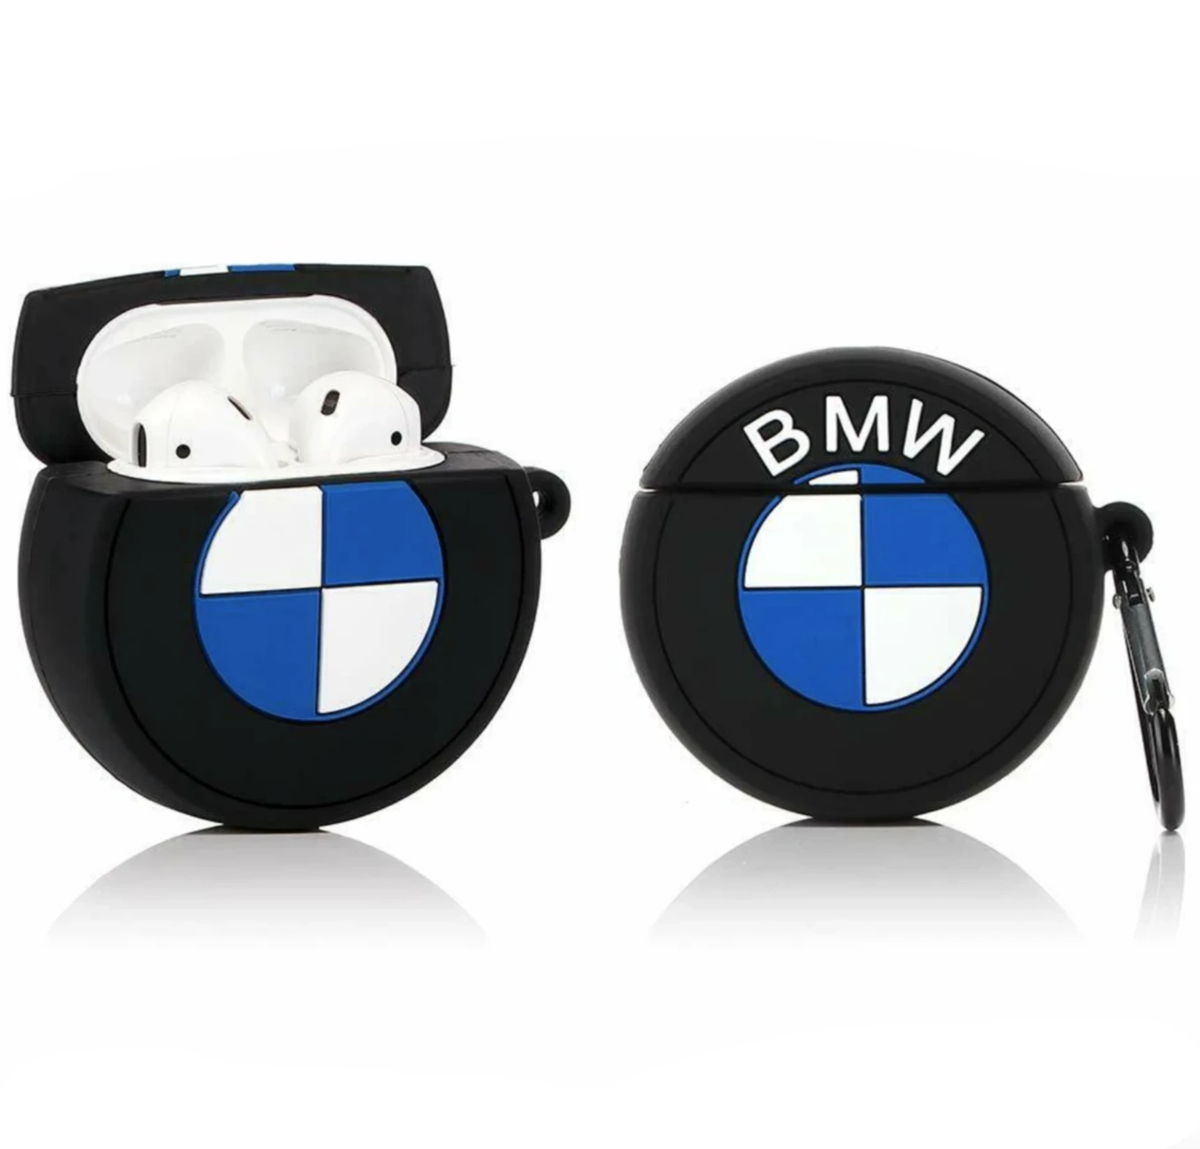 Bmw Luxury Car Apple Airpods Case Airpods Pro Luxury Car Logos Luxury Cars Luxury Car Brands